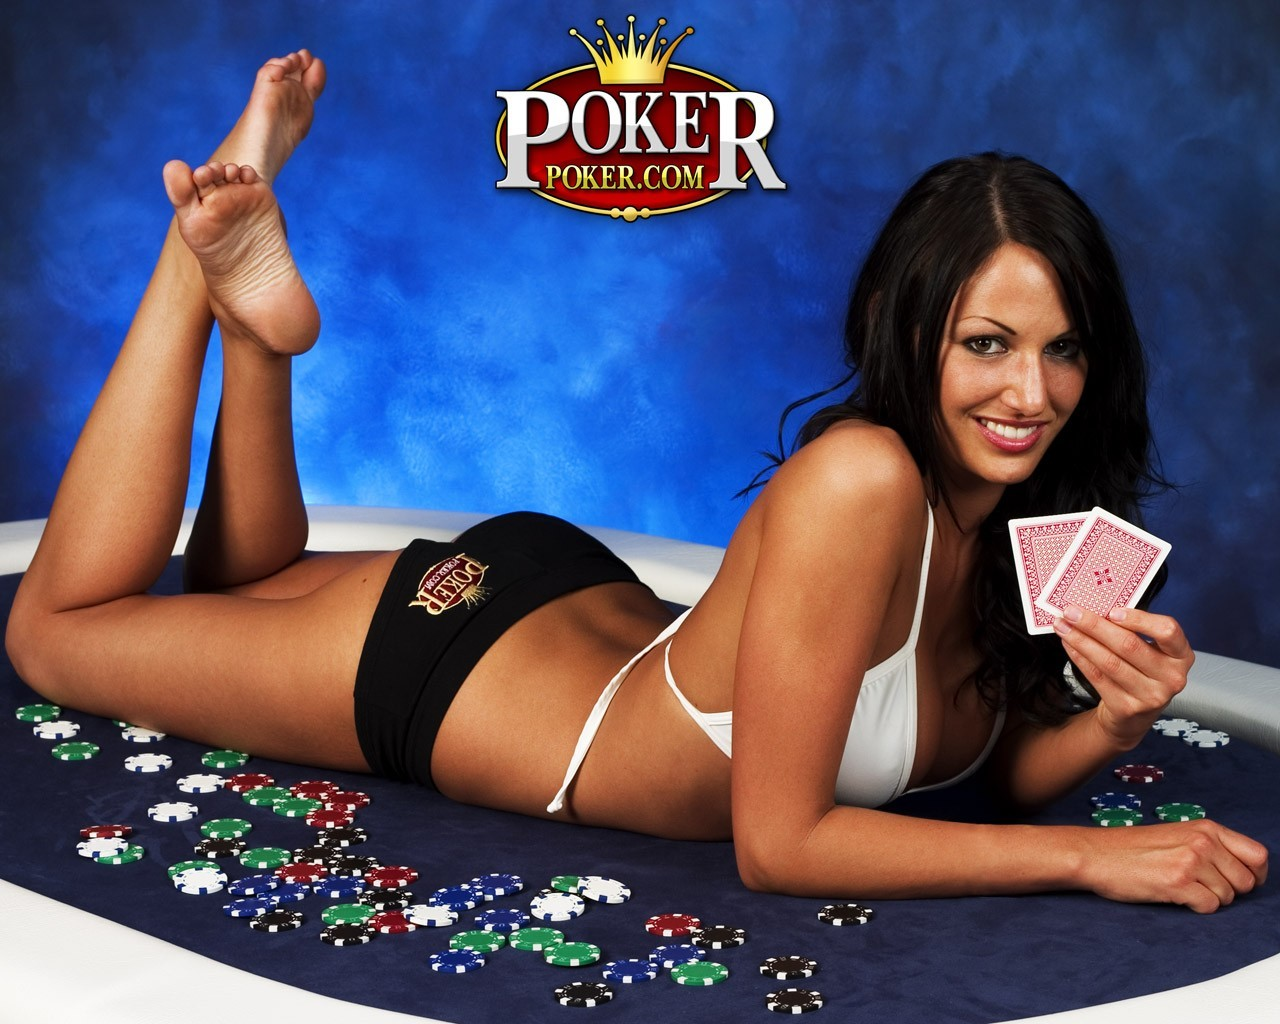 poker-pictures-babes-pakistani-young-girls-teen-sex